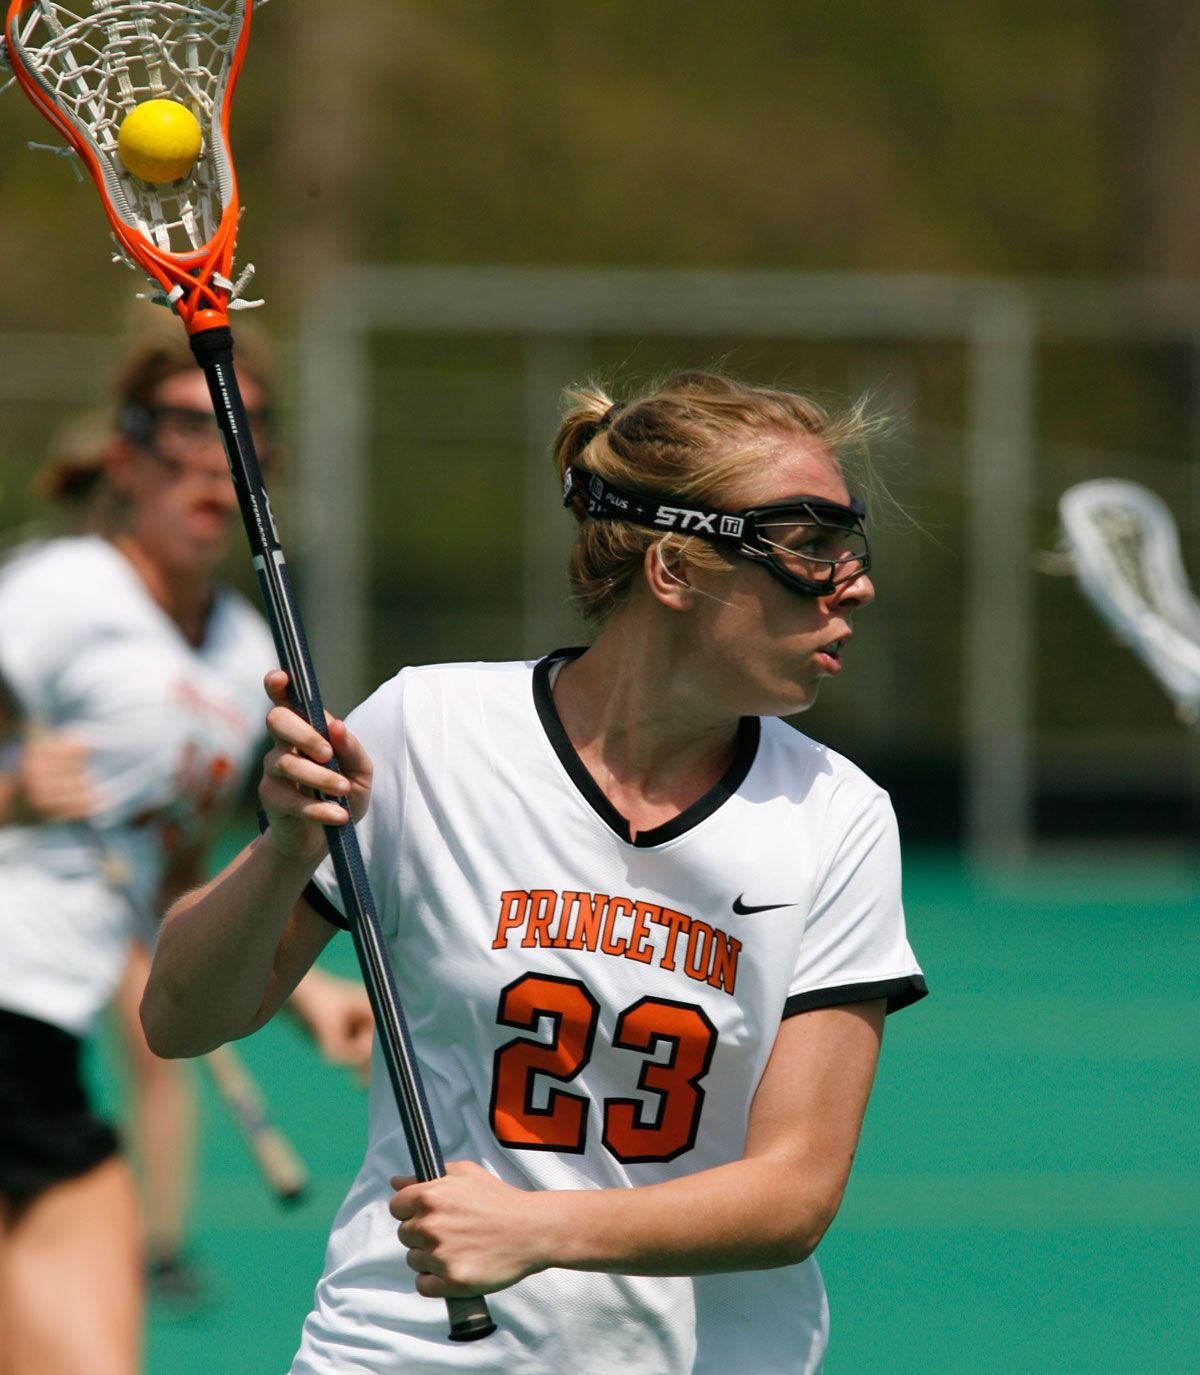 Courtney Bird '04 - Princeton Photo Credit: Beverly Schaefer